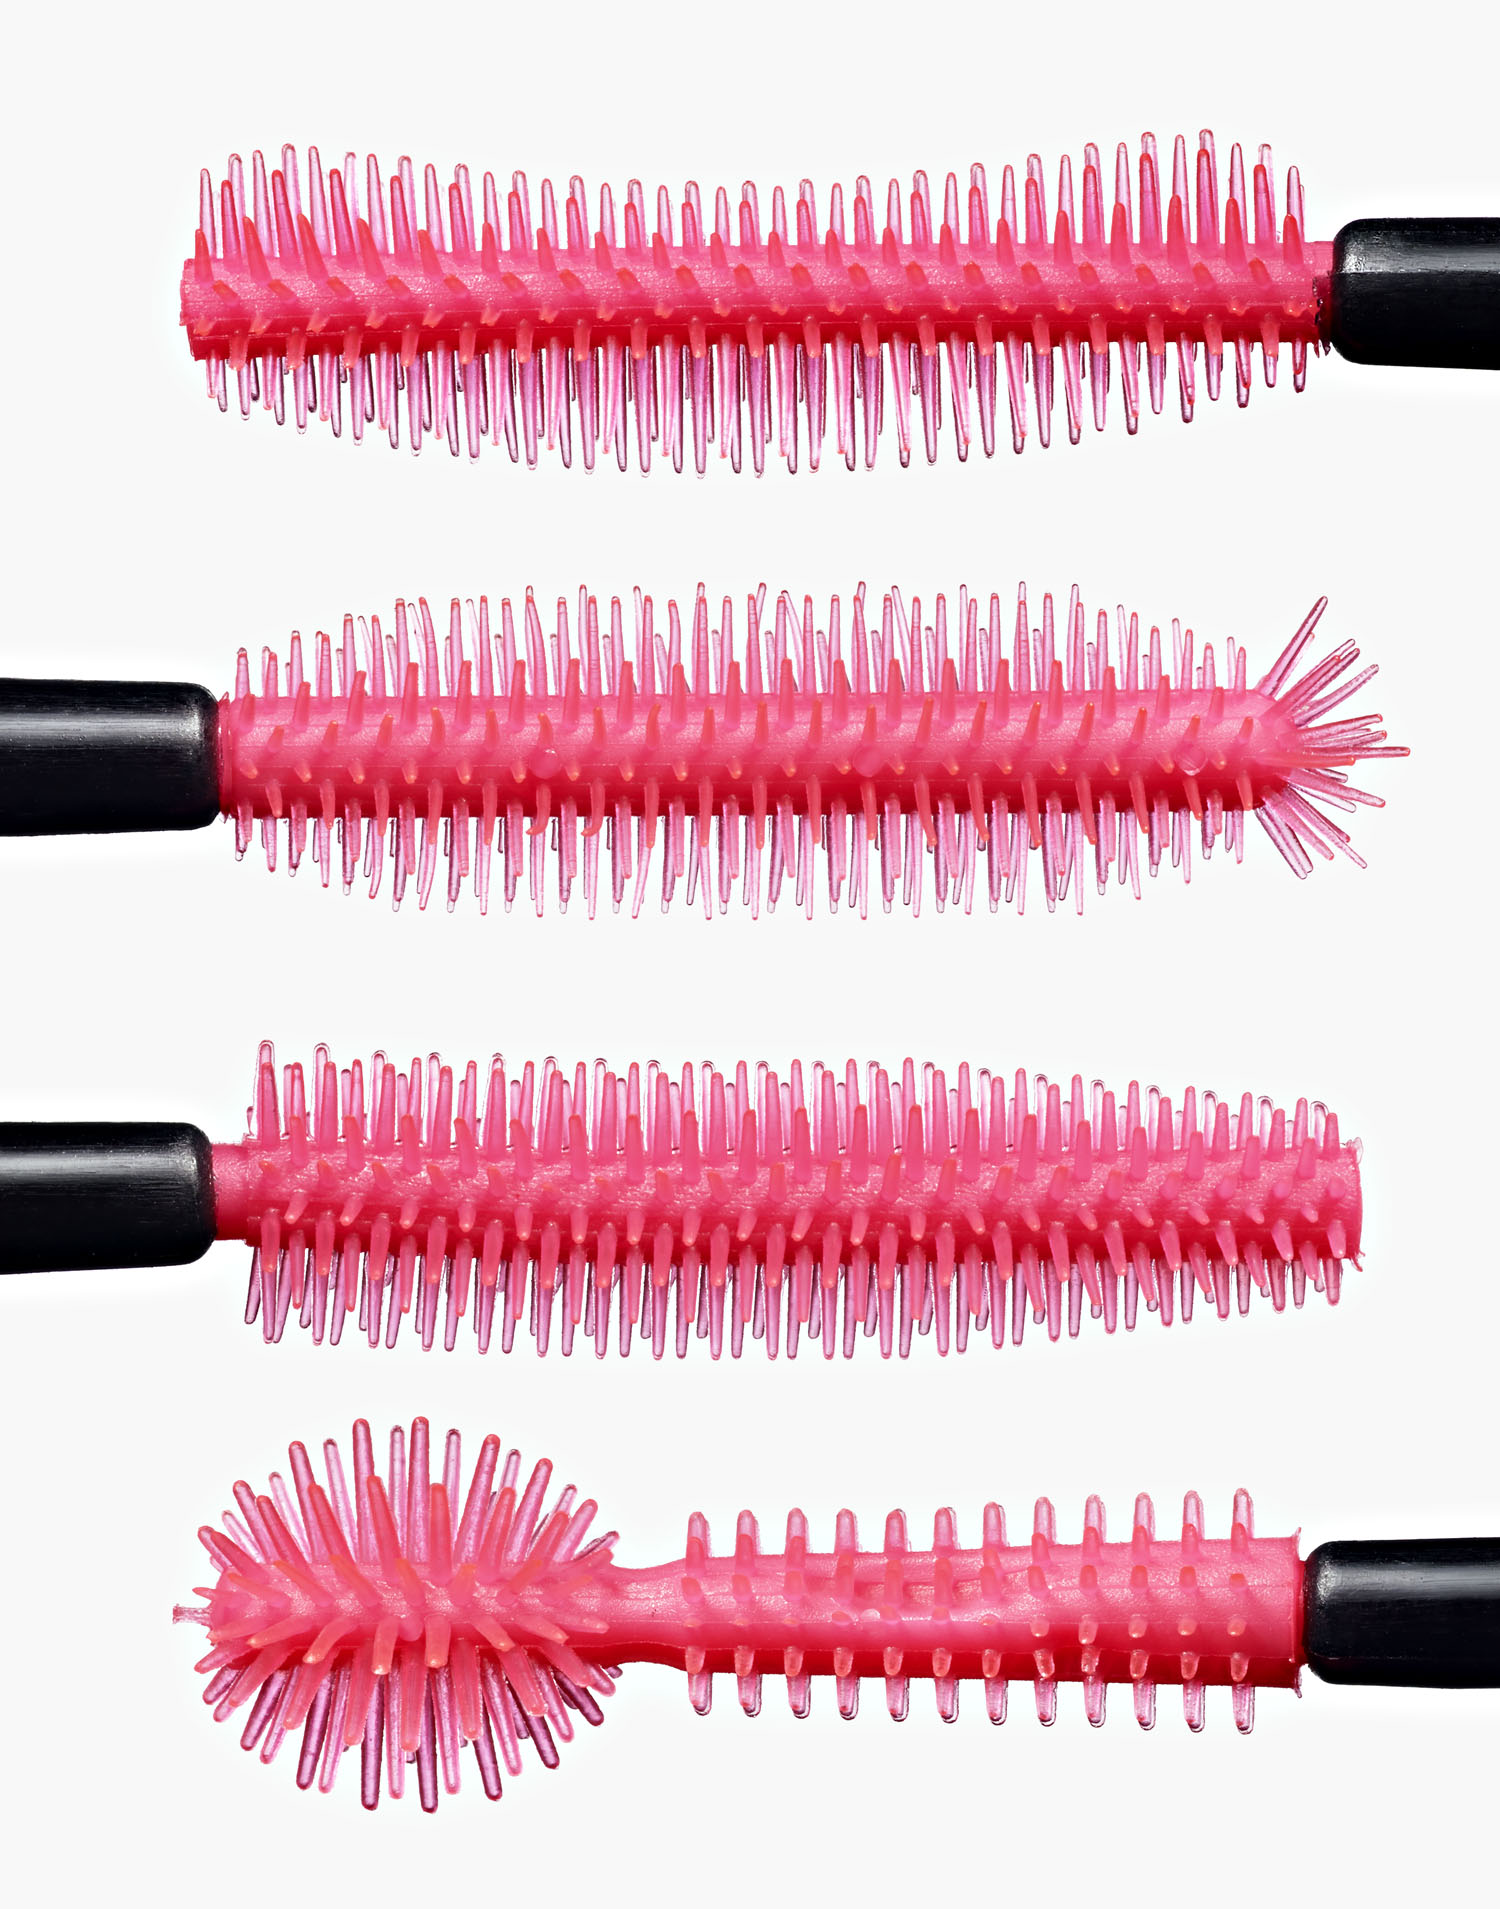 Sephora Disposable Mascara Wands